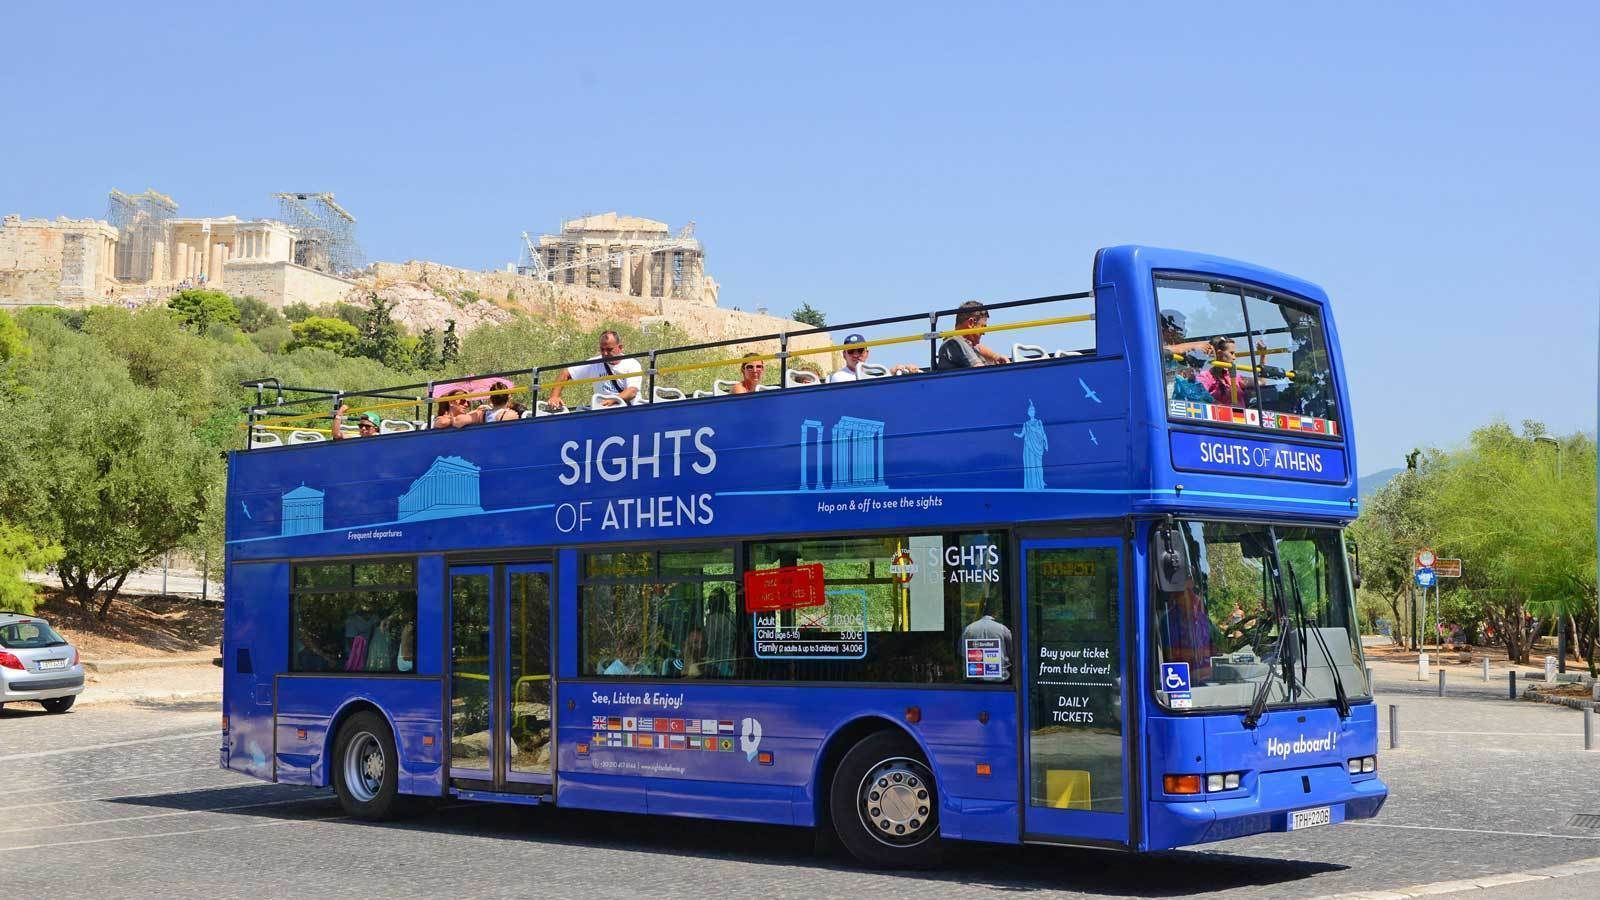 blue double deck bus near the Acropolis in Athens